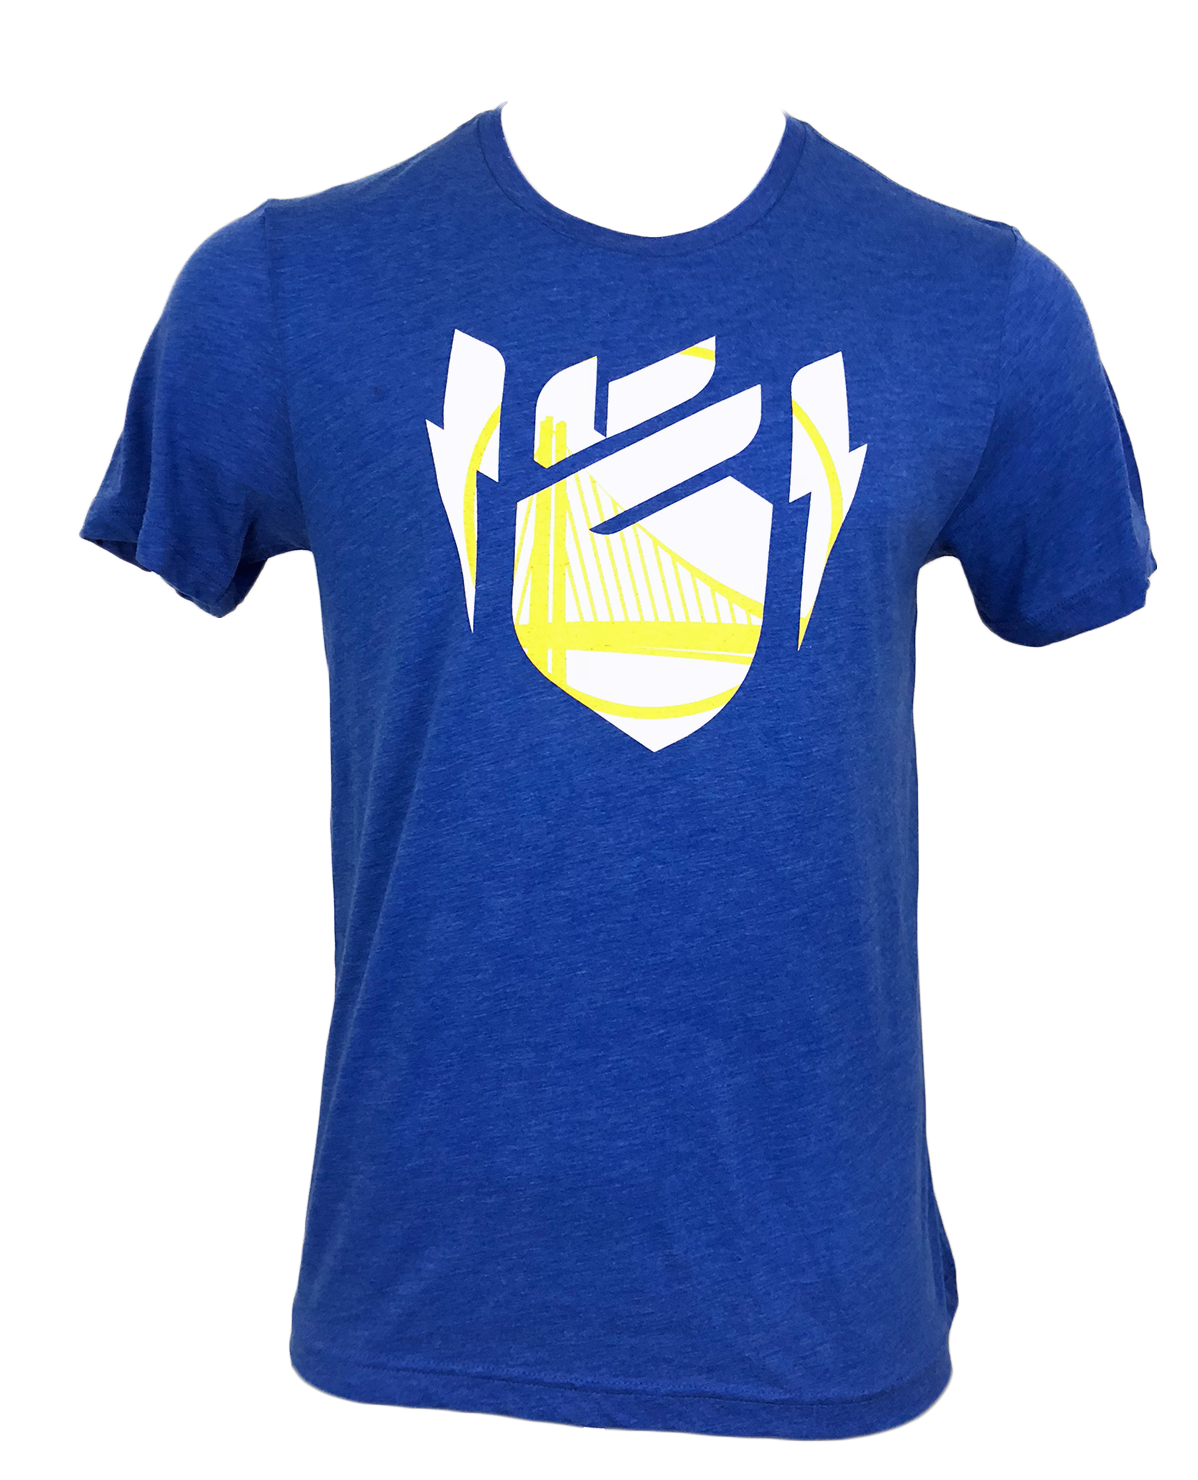 Dubs Bridge T-shirt Blue